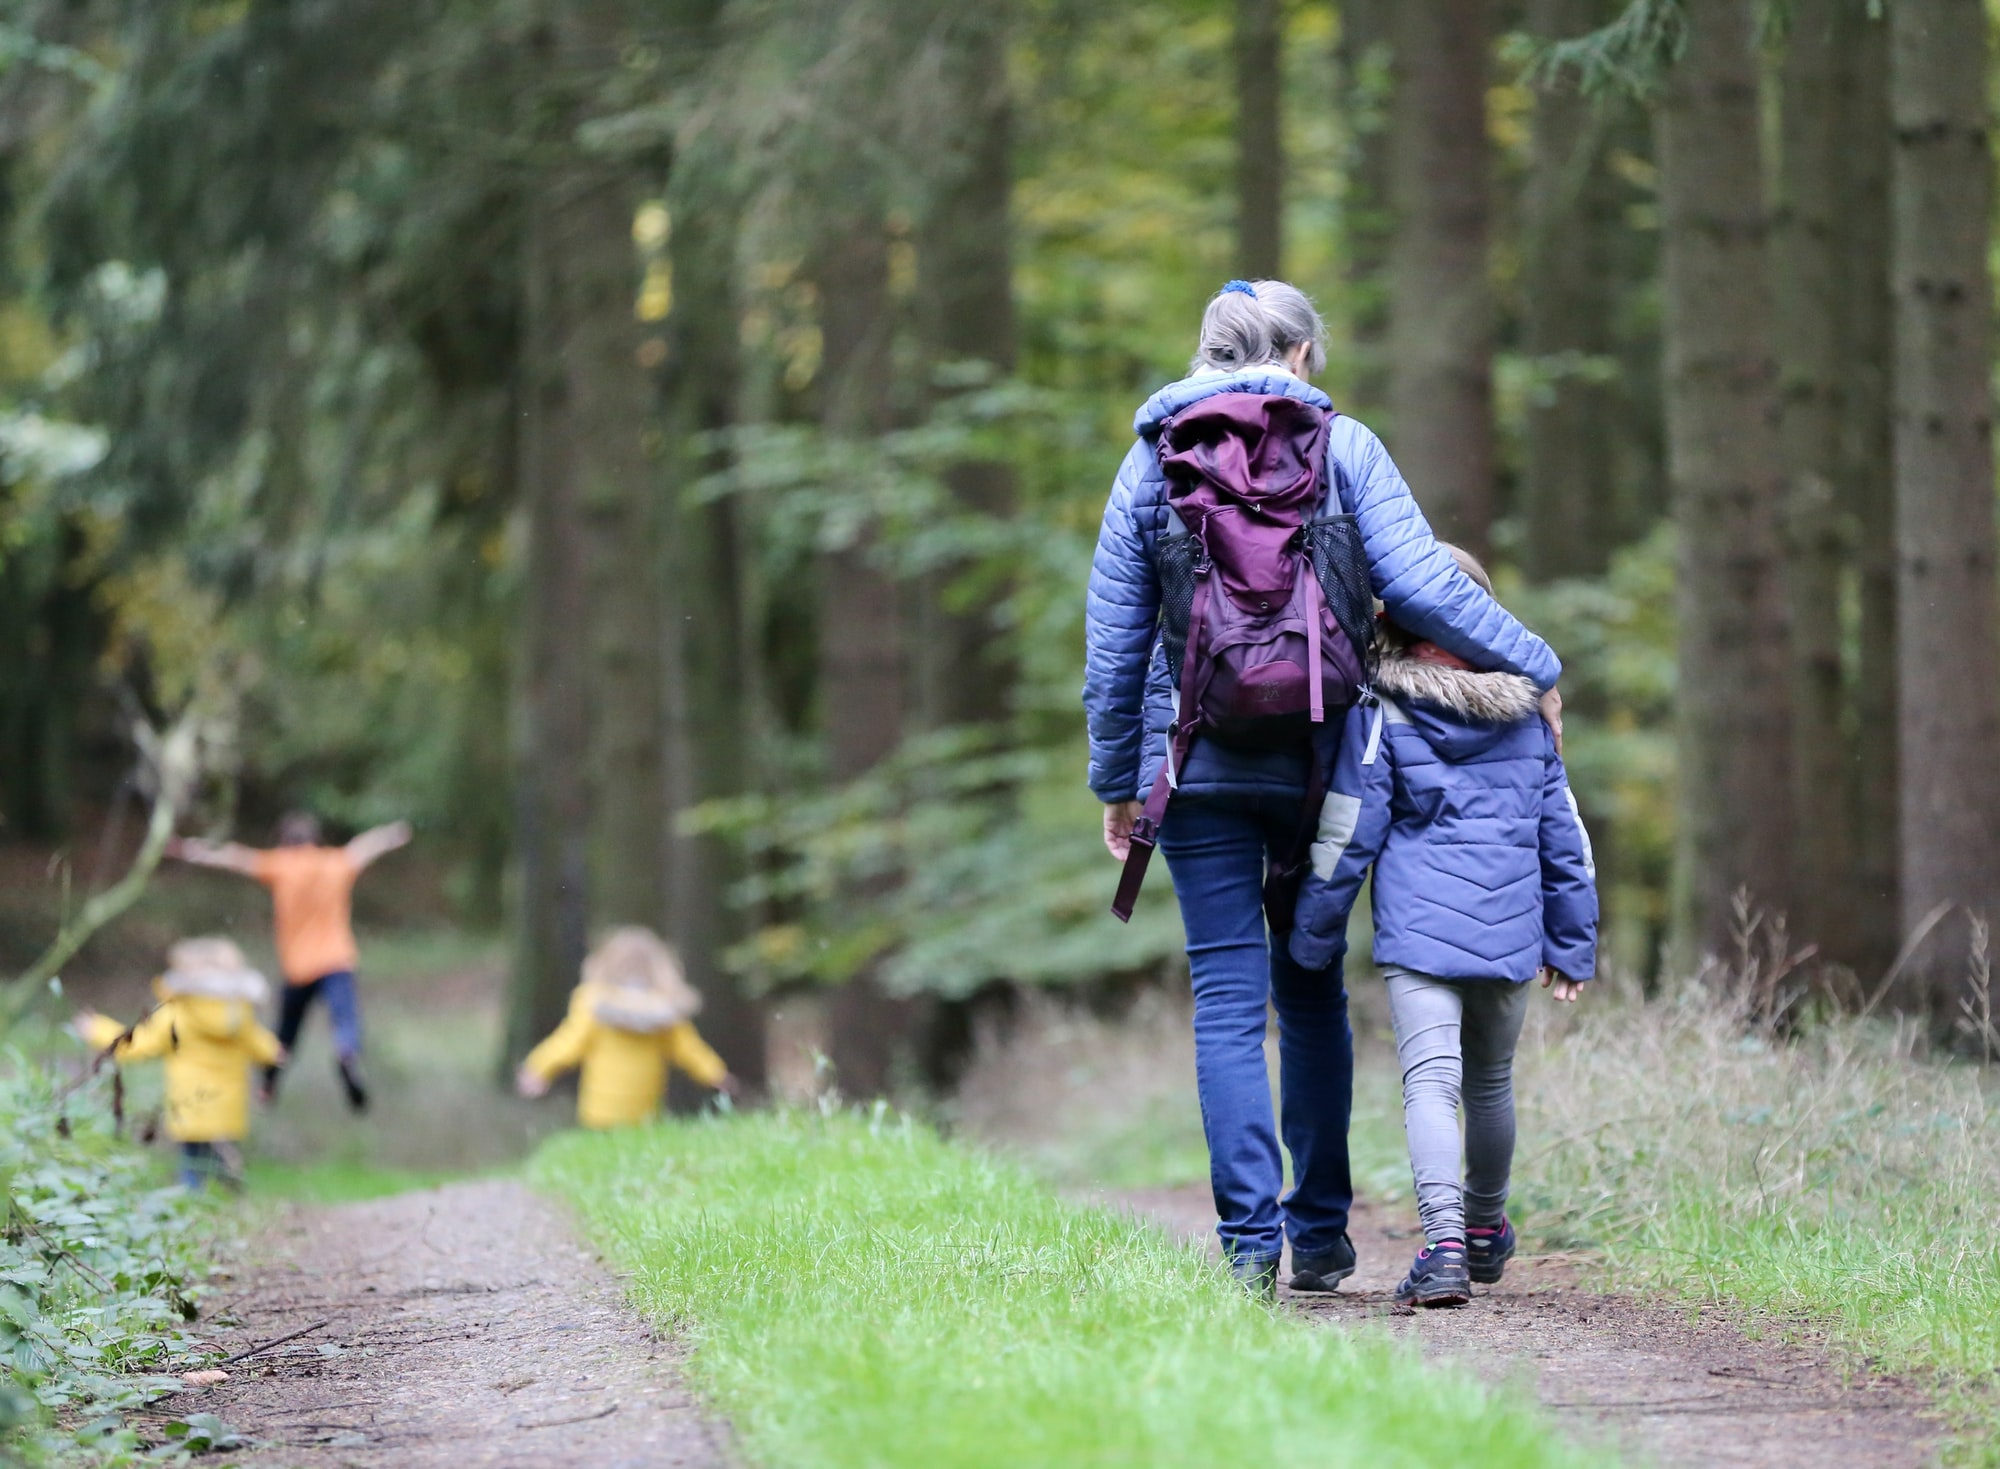 Grandmother with grandchildren hiking in a forest.